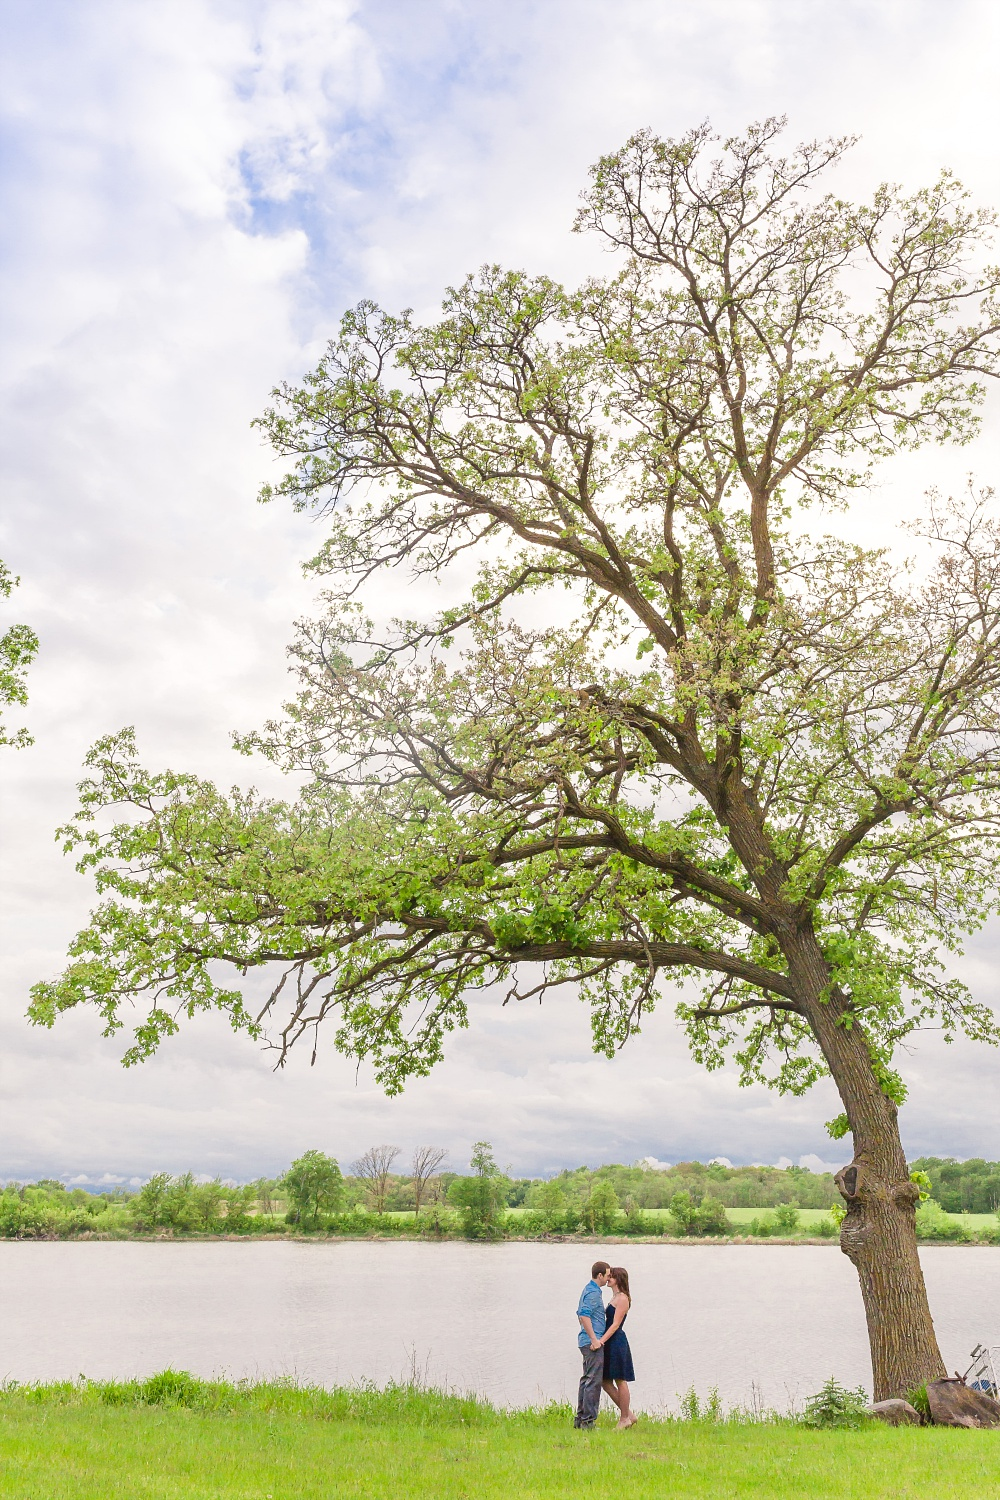 Anniversary photos under a large tree by the lake | Amber Langerud Photography